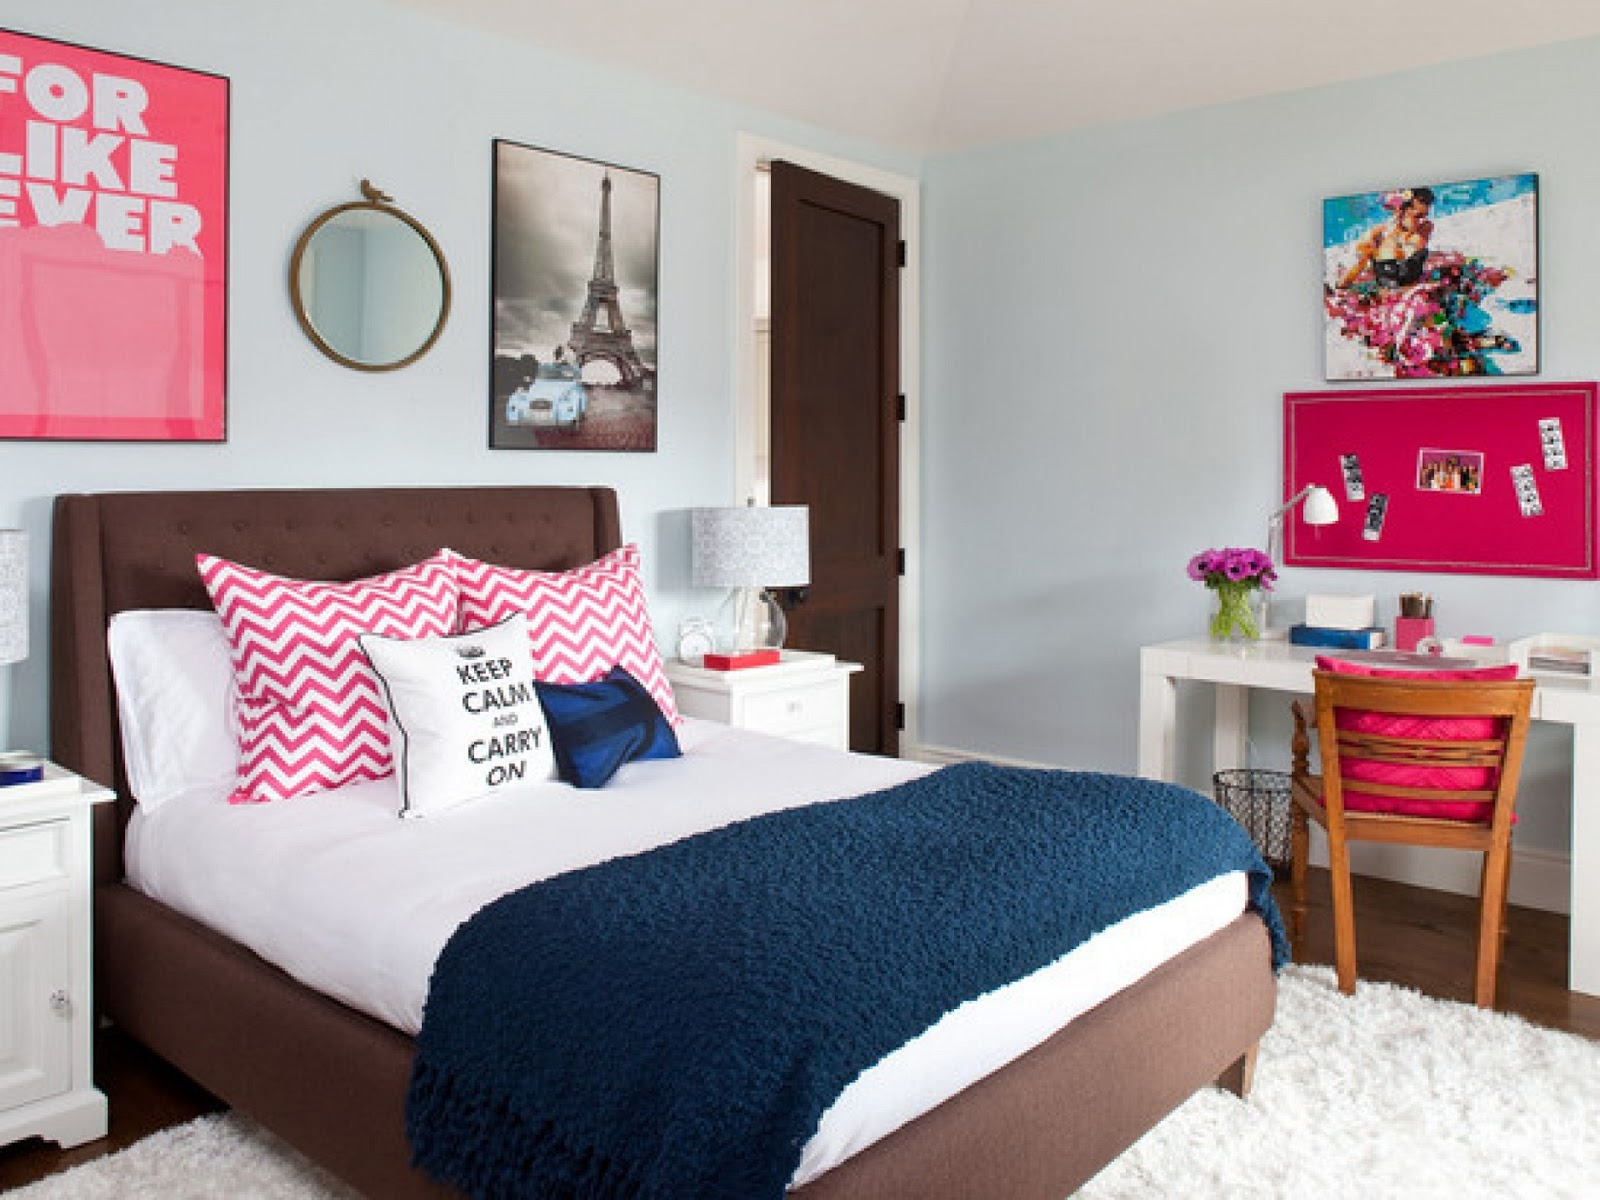 breathtaking bedrooms for teenage girl pics decoration inspiration with bedroom ideas for teenage apartments images girl apartment ideas